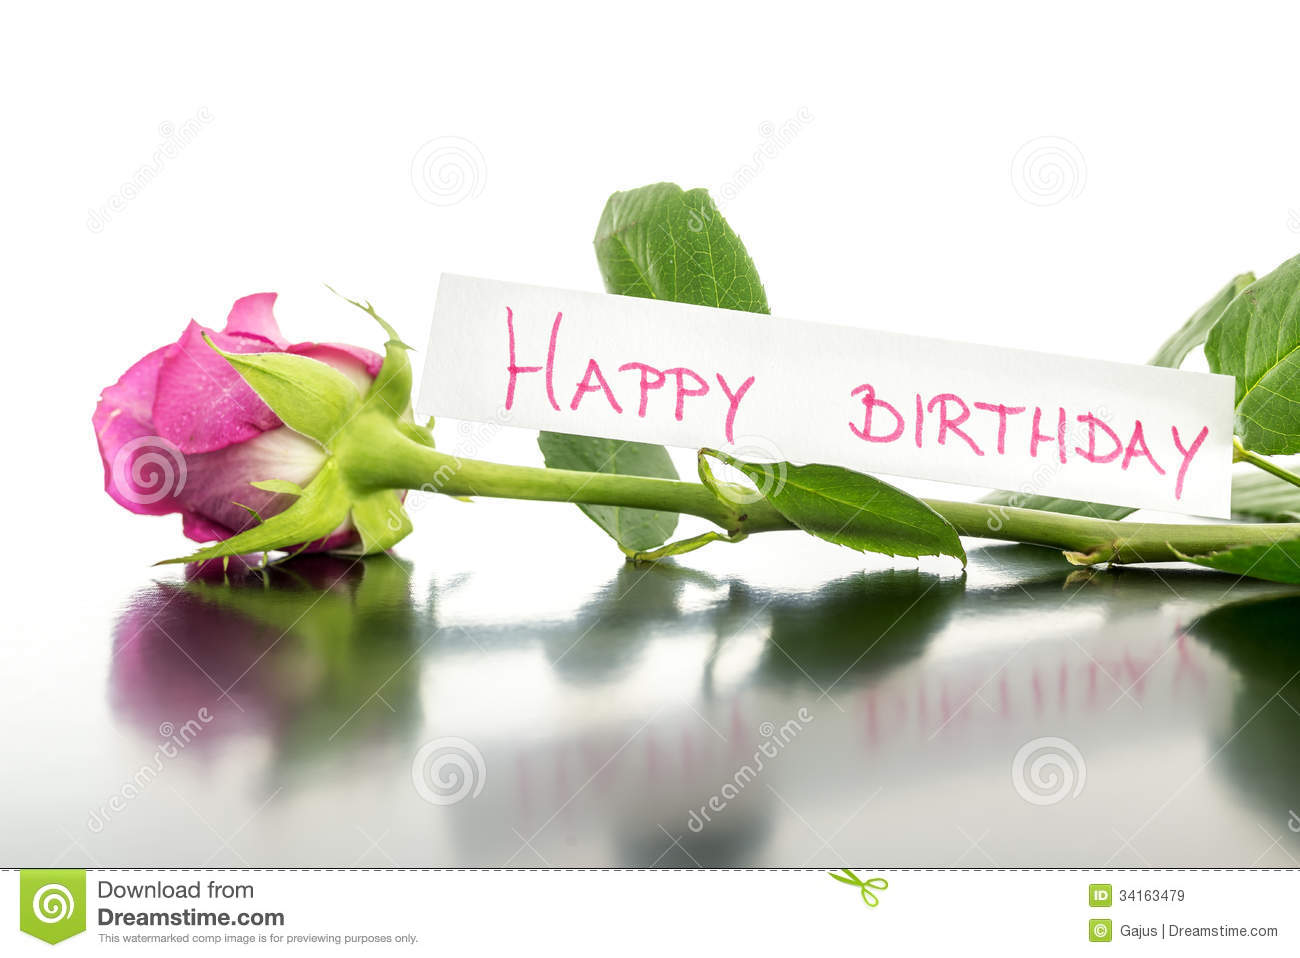 happy birthday flower royalty free stock images  image, Beautiful flower